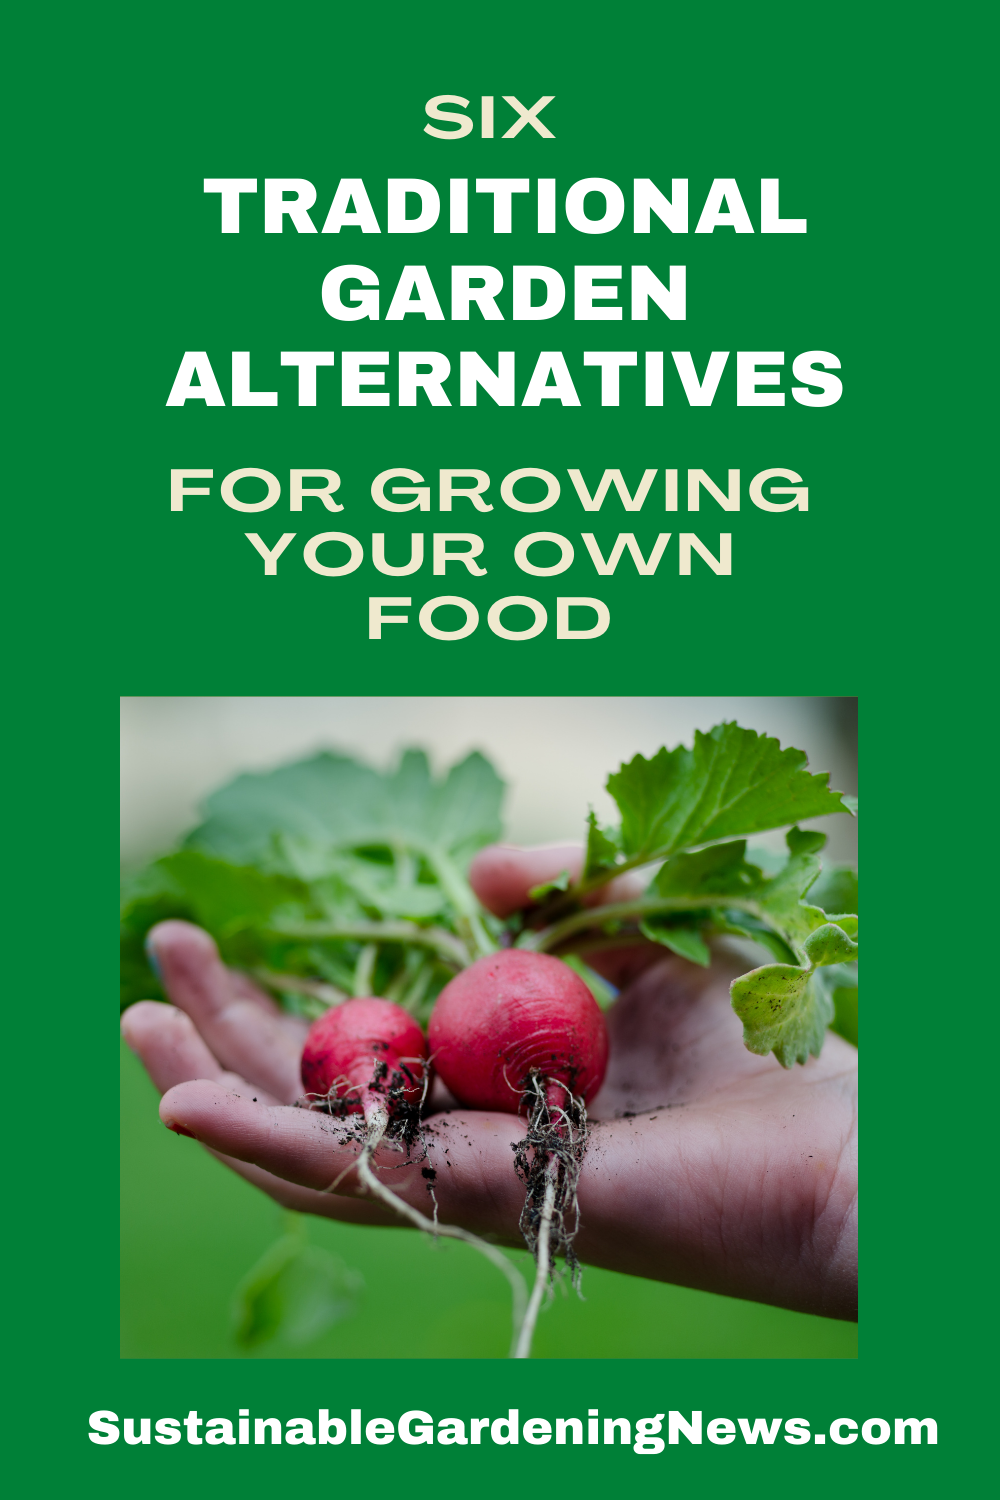 6 Traditional Garden Alternatives for Growing Your Own Food